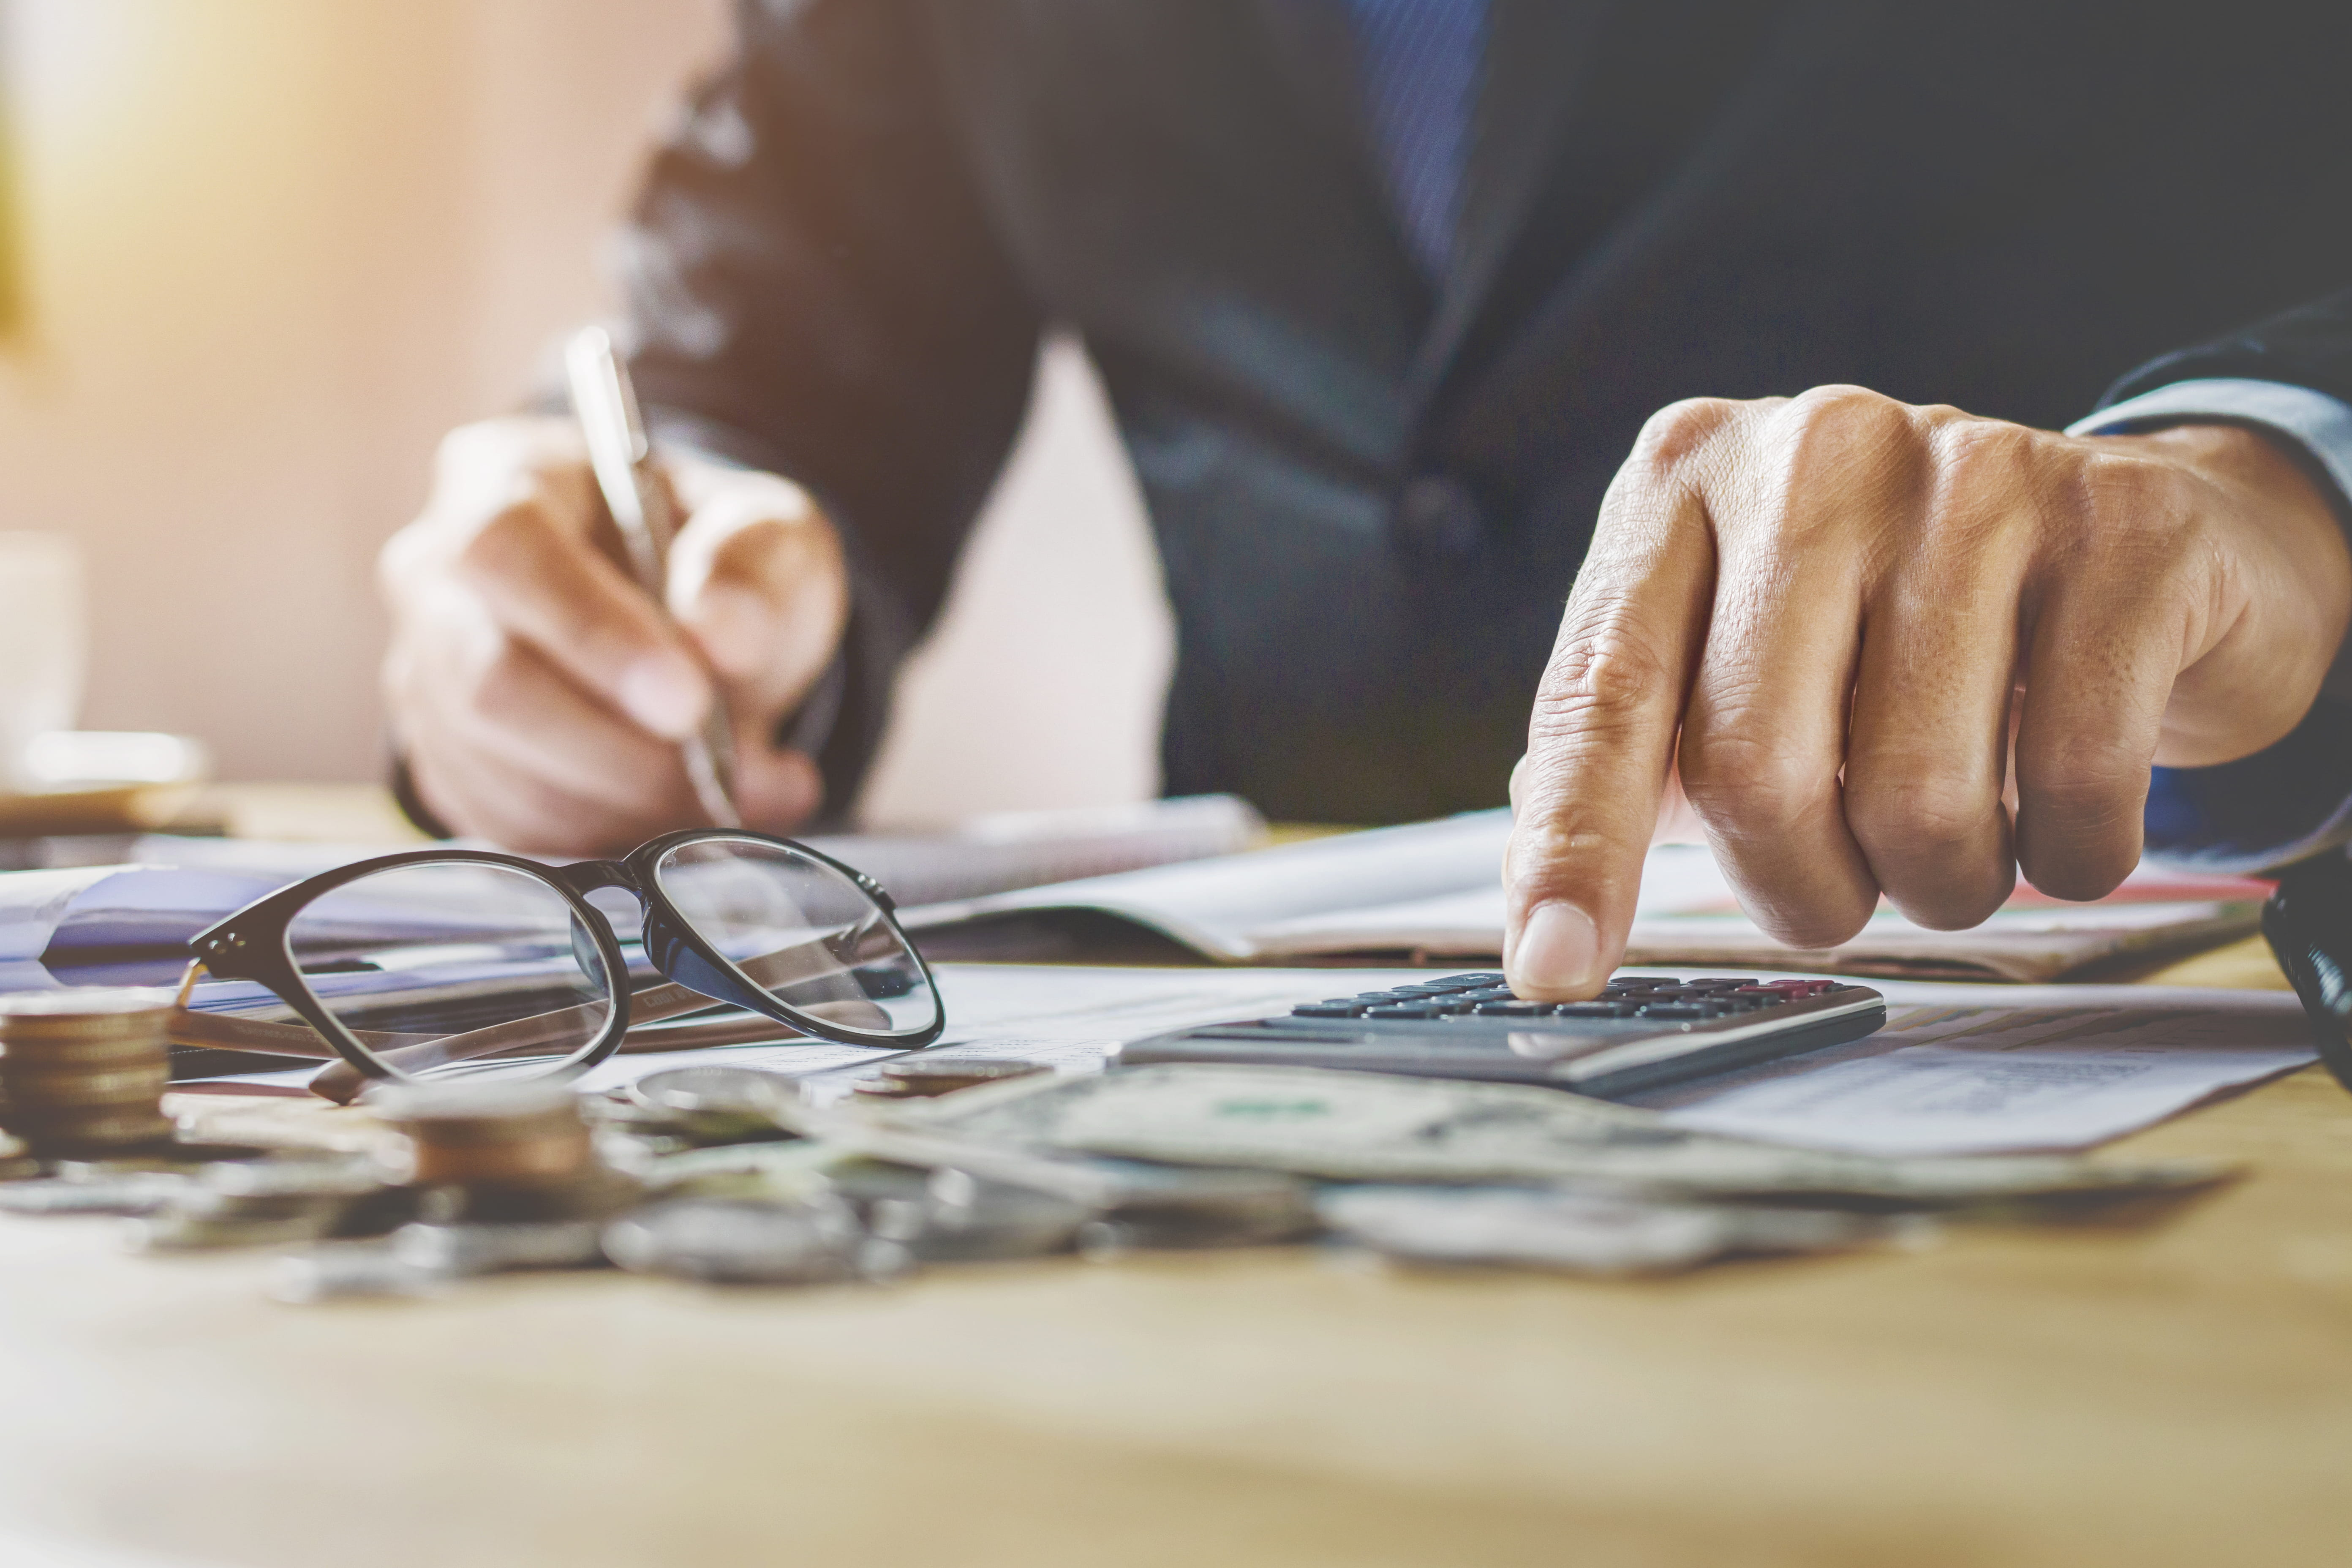 accountant working in office using calculator